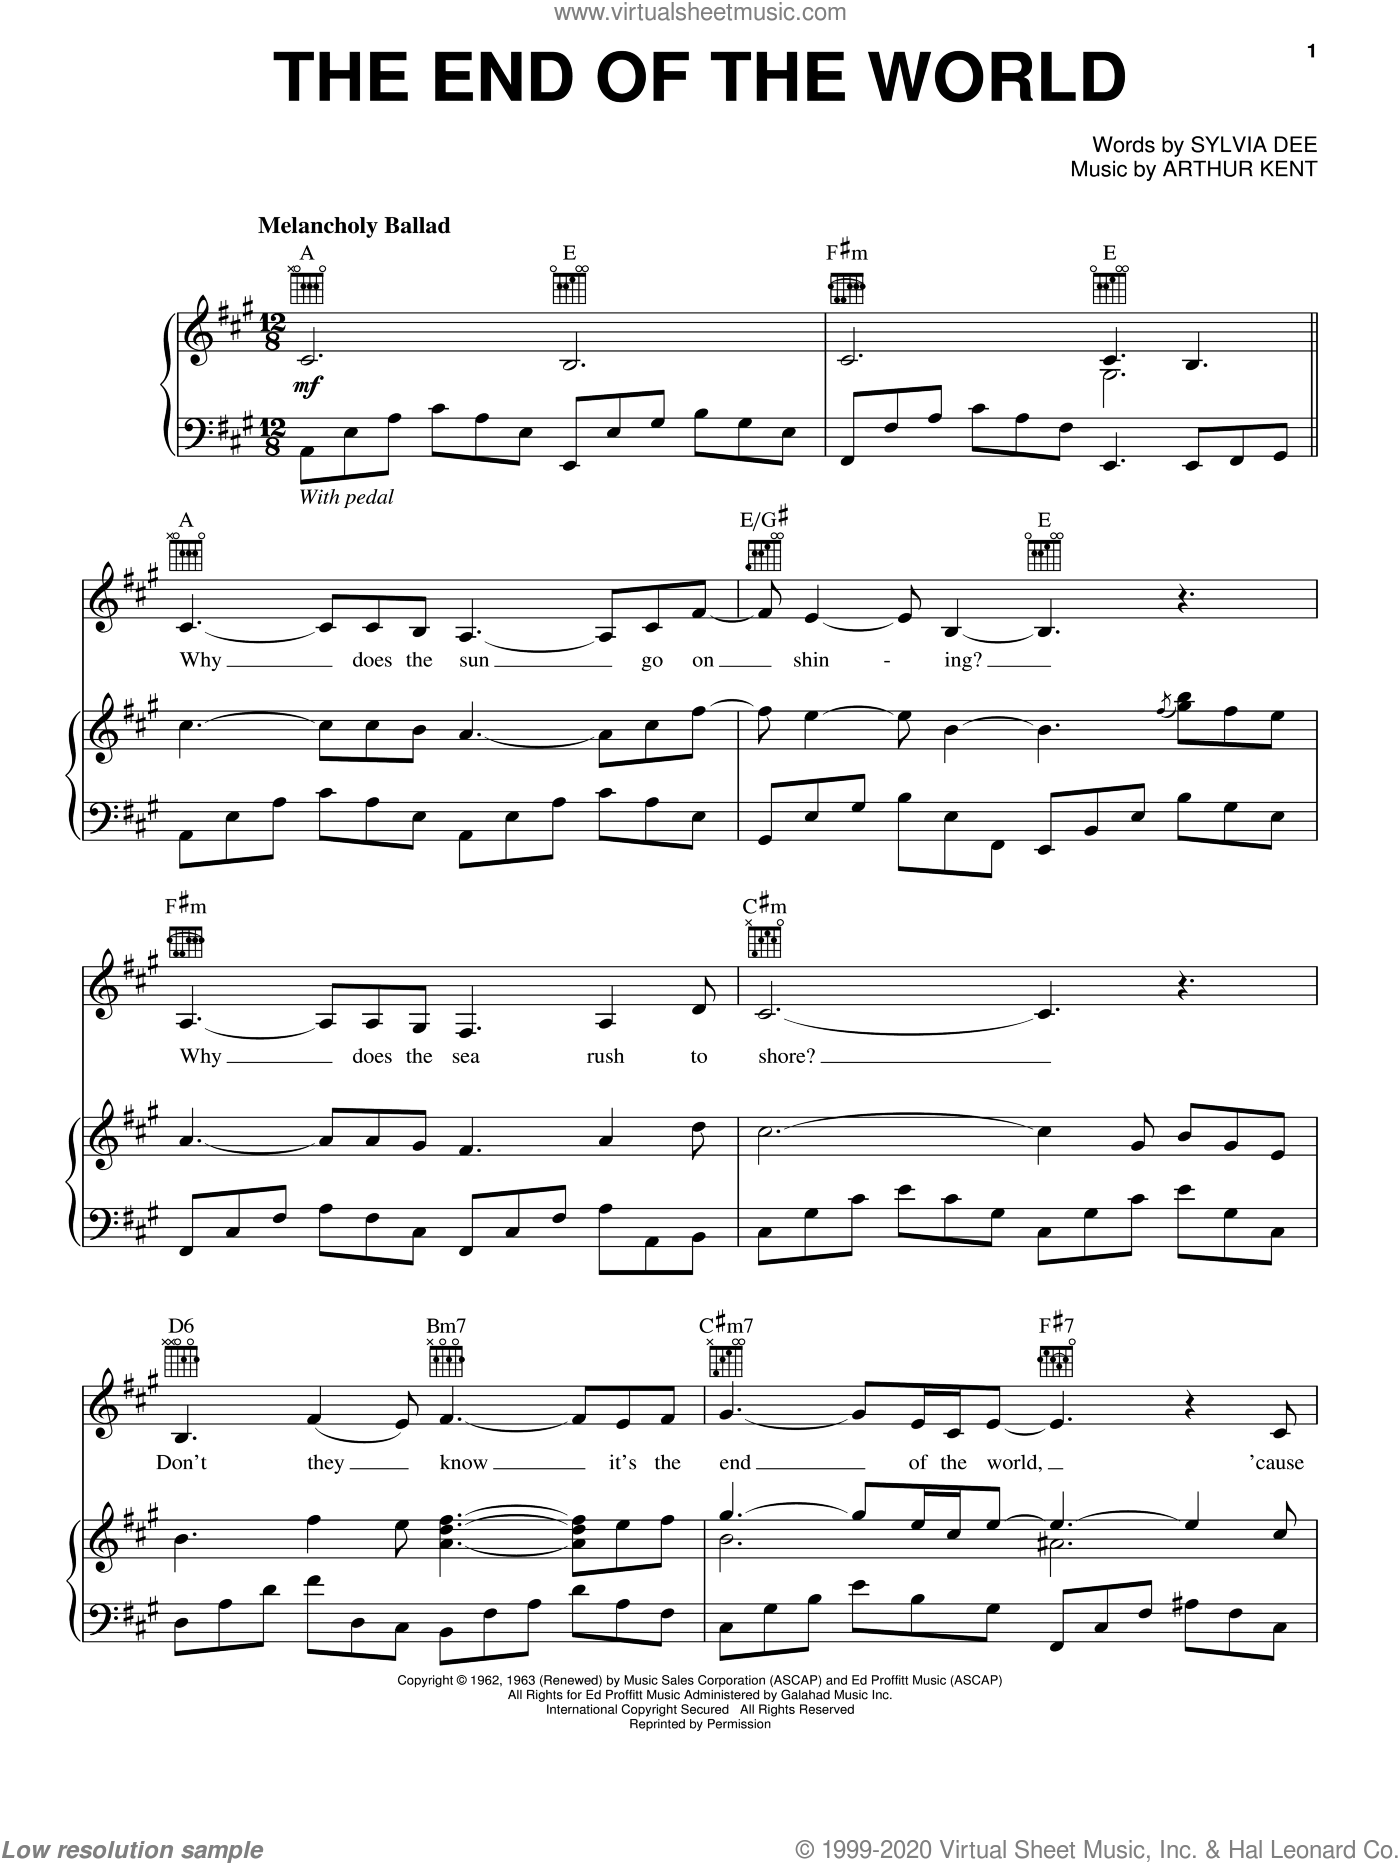 The End Of The World sheet music for voice, piano or guitar by Sylvia Dee